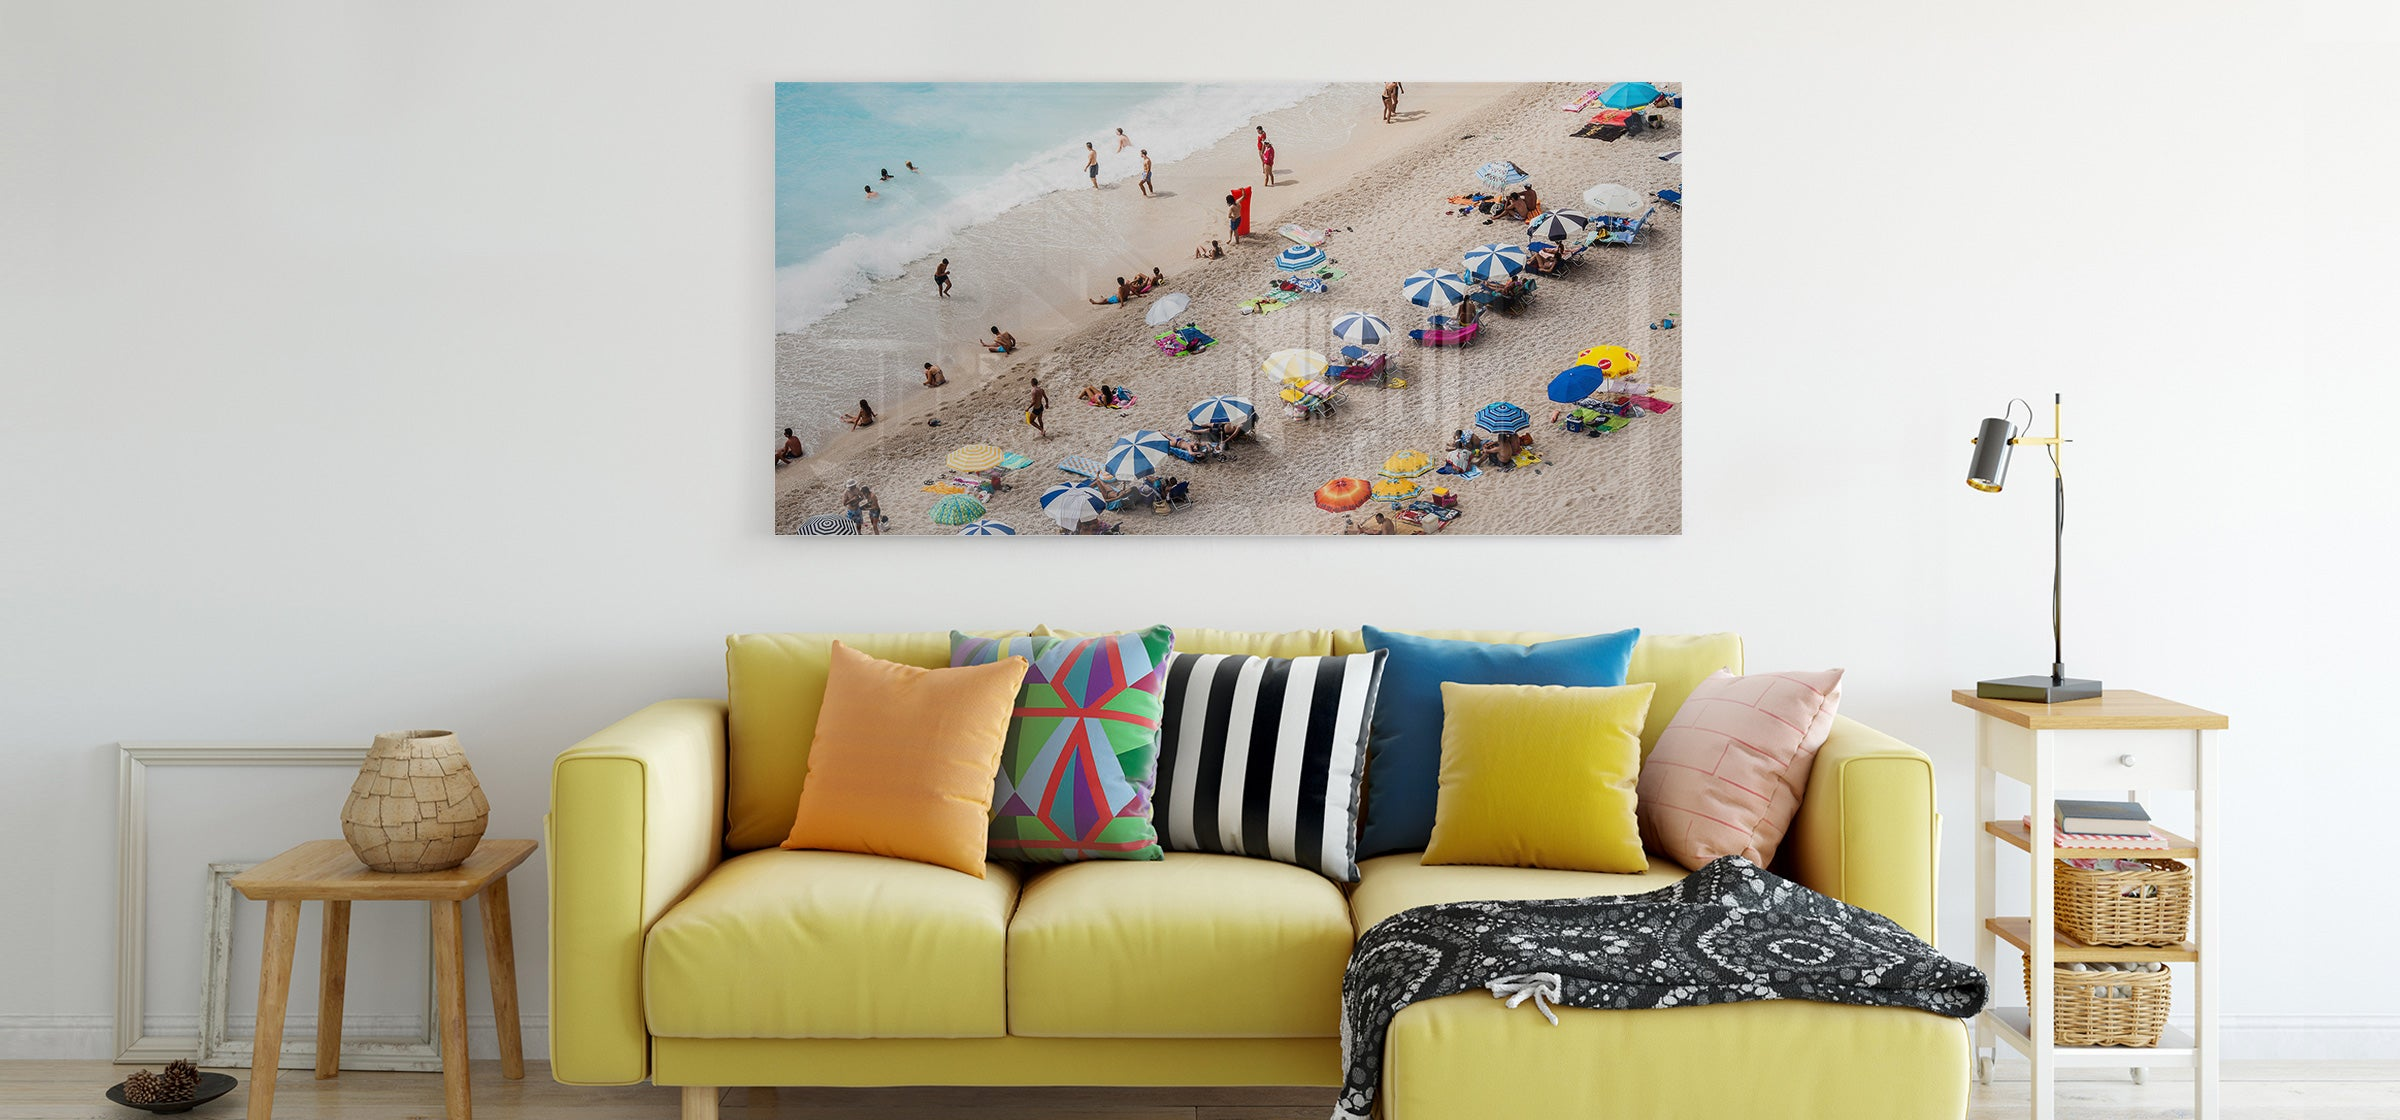 Panoramic Beach Photo Printed on Acrylic by Posterjack Canada